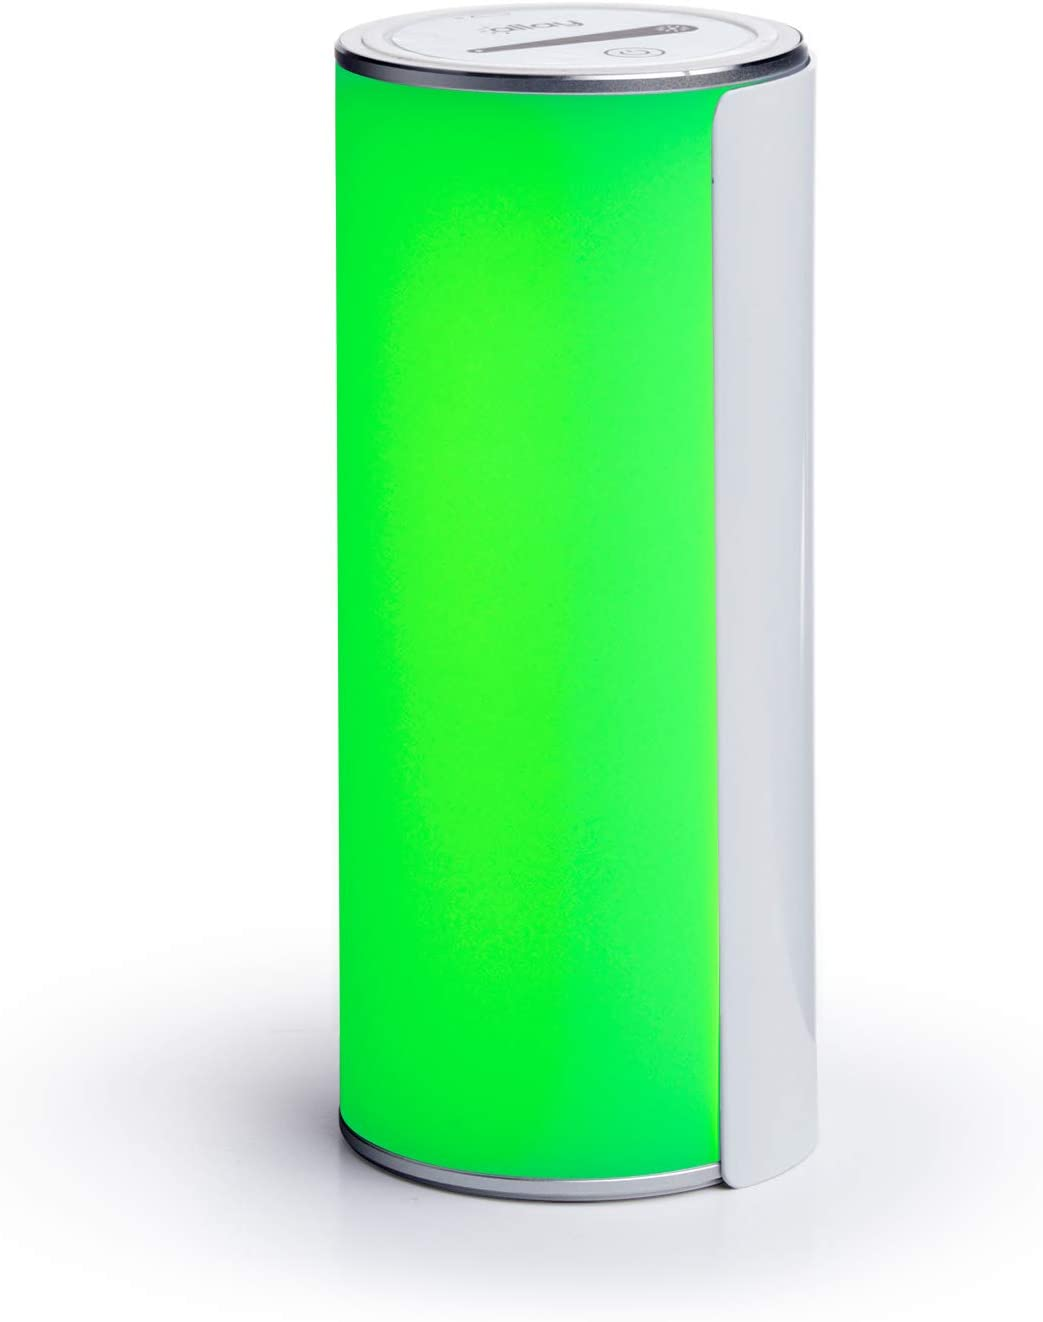 Allay Light Therapy Lamp for Migraine Sufferers - Can Help Headache, Stress Relief, Anxiety, Nausea, Insomnia, Light Sensitivity - Narrow Band Green LEDs, Portable, Touch Controls, Medicine Free: Health & Personal Care